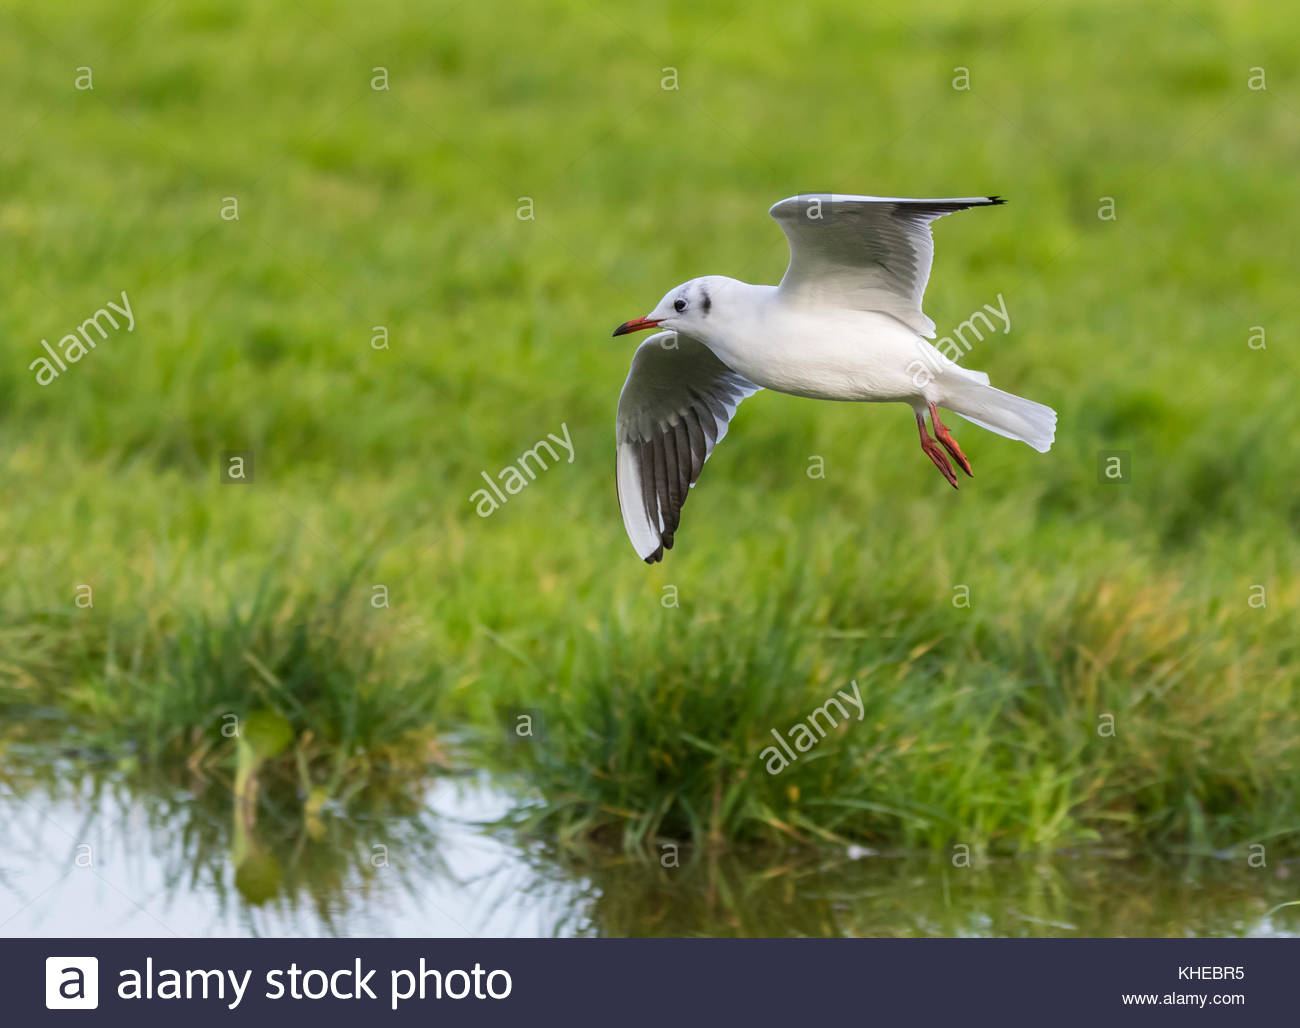 Black Headed Gull (Chroicocephalus ridibundus) flying low over a field in Winter plumage  in Autumn in the South - Stock Image